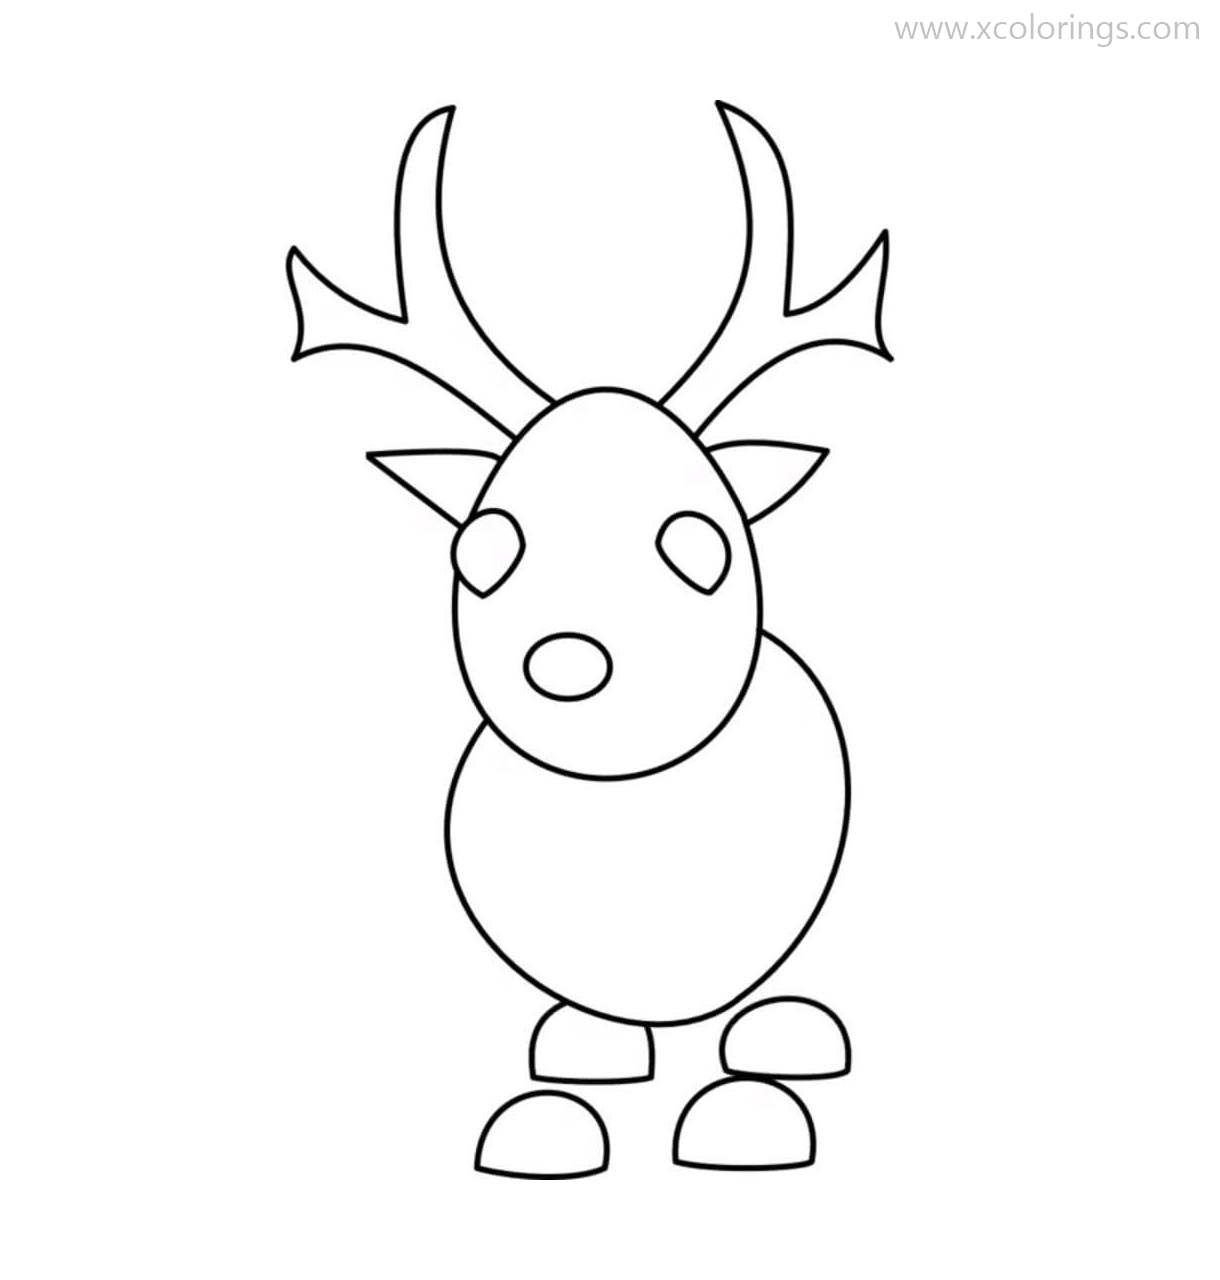 Roblox Adopt Me Coloring Pages Reindeer In 2020 Cow Coloring Pages Coloring Pages Cute Drawings